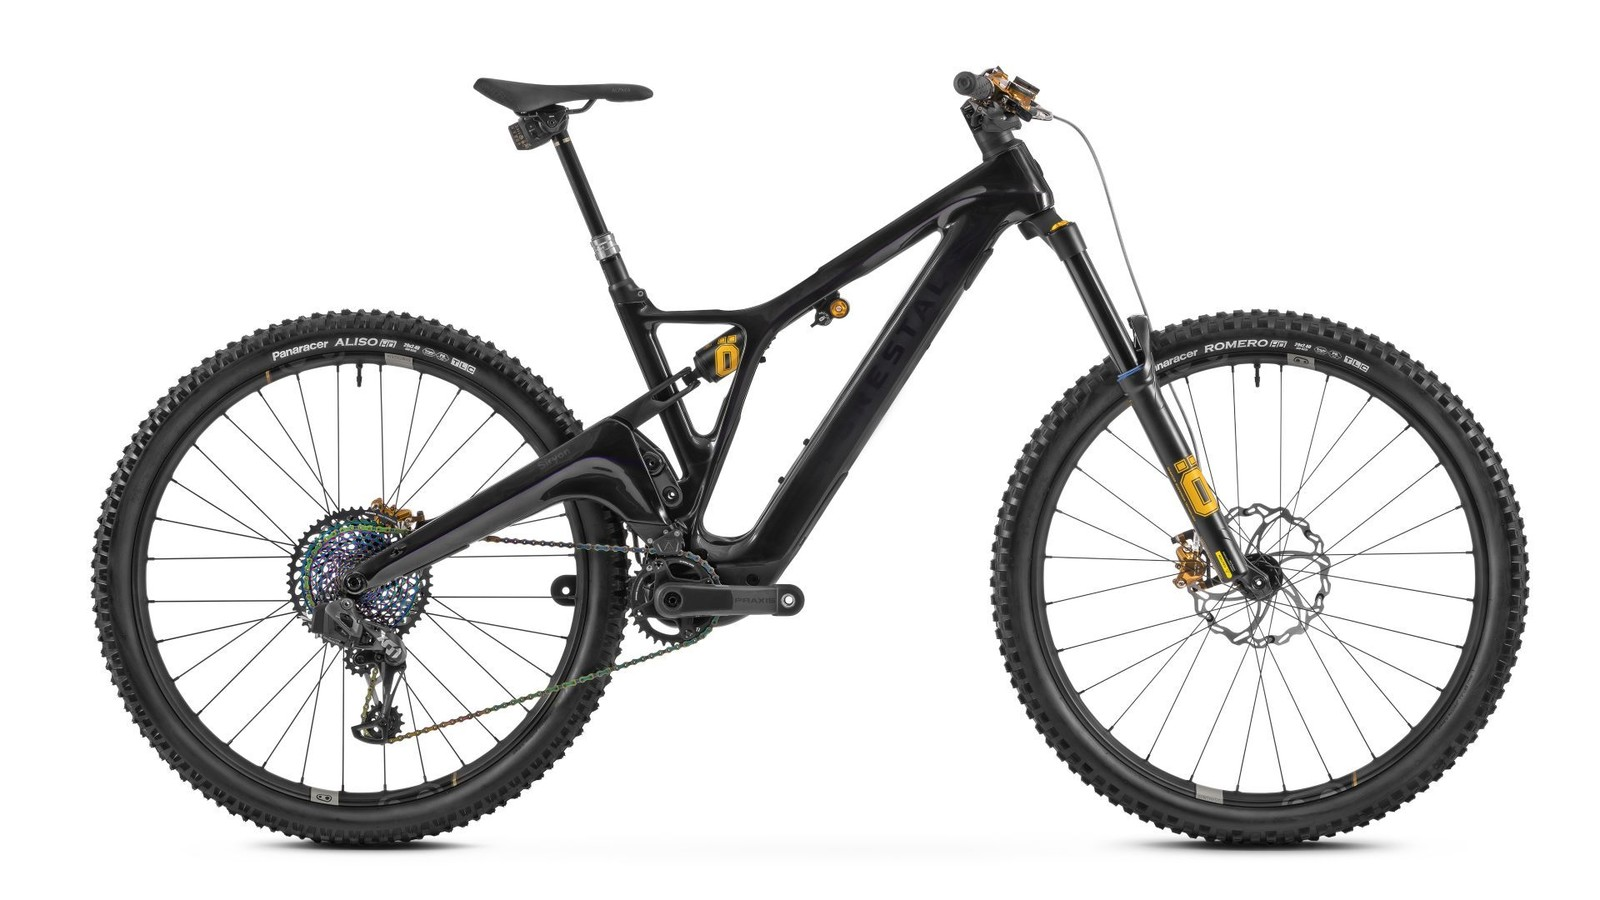 Forestal Introduces Brand, Launches 4 New Bikes